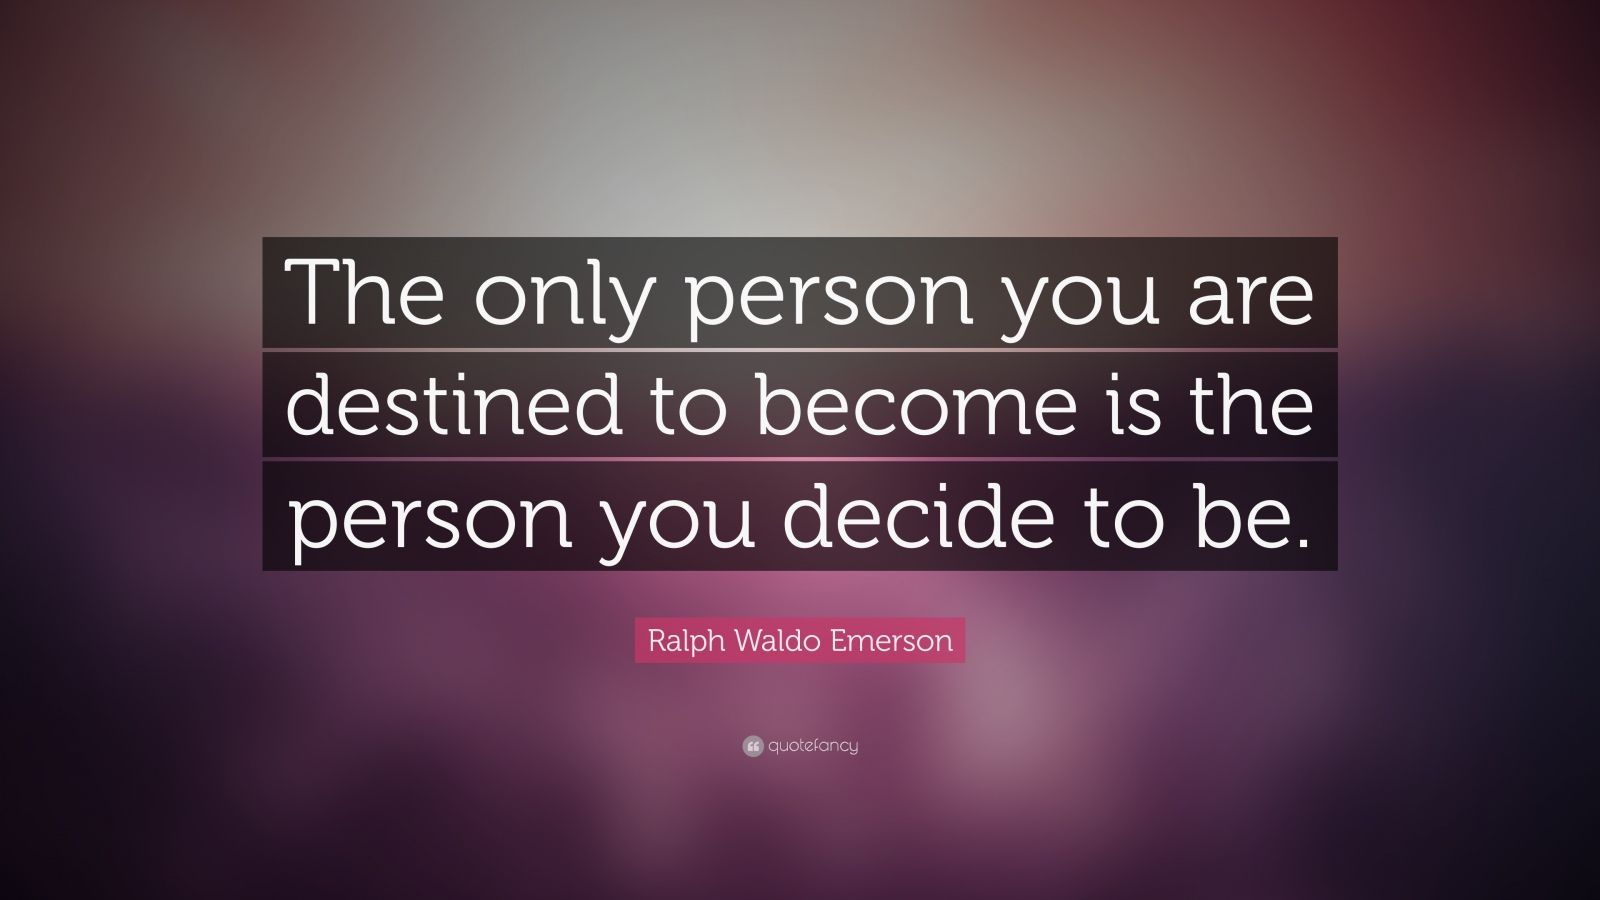 The only person you are destined to become is the person you decide to